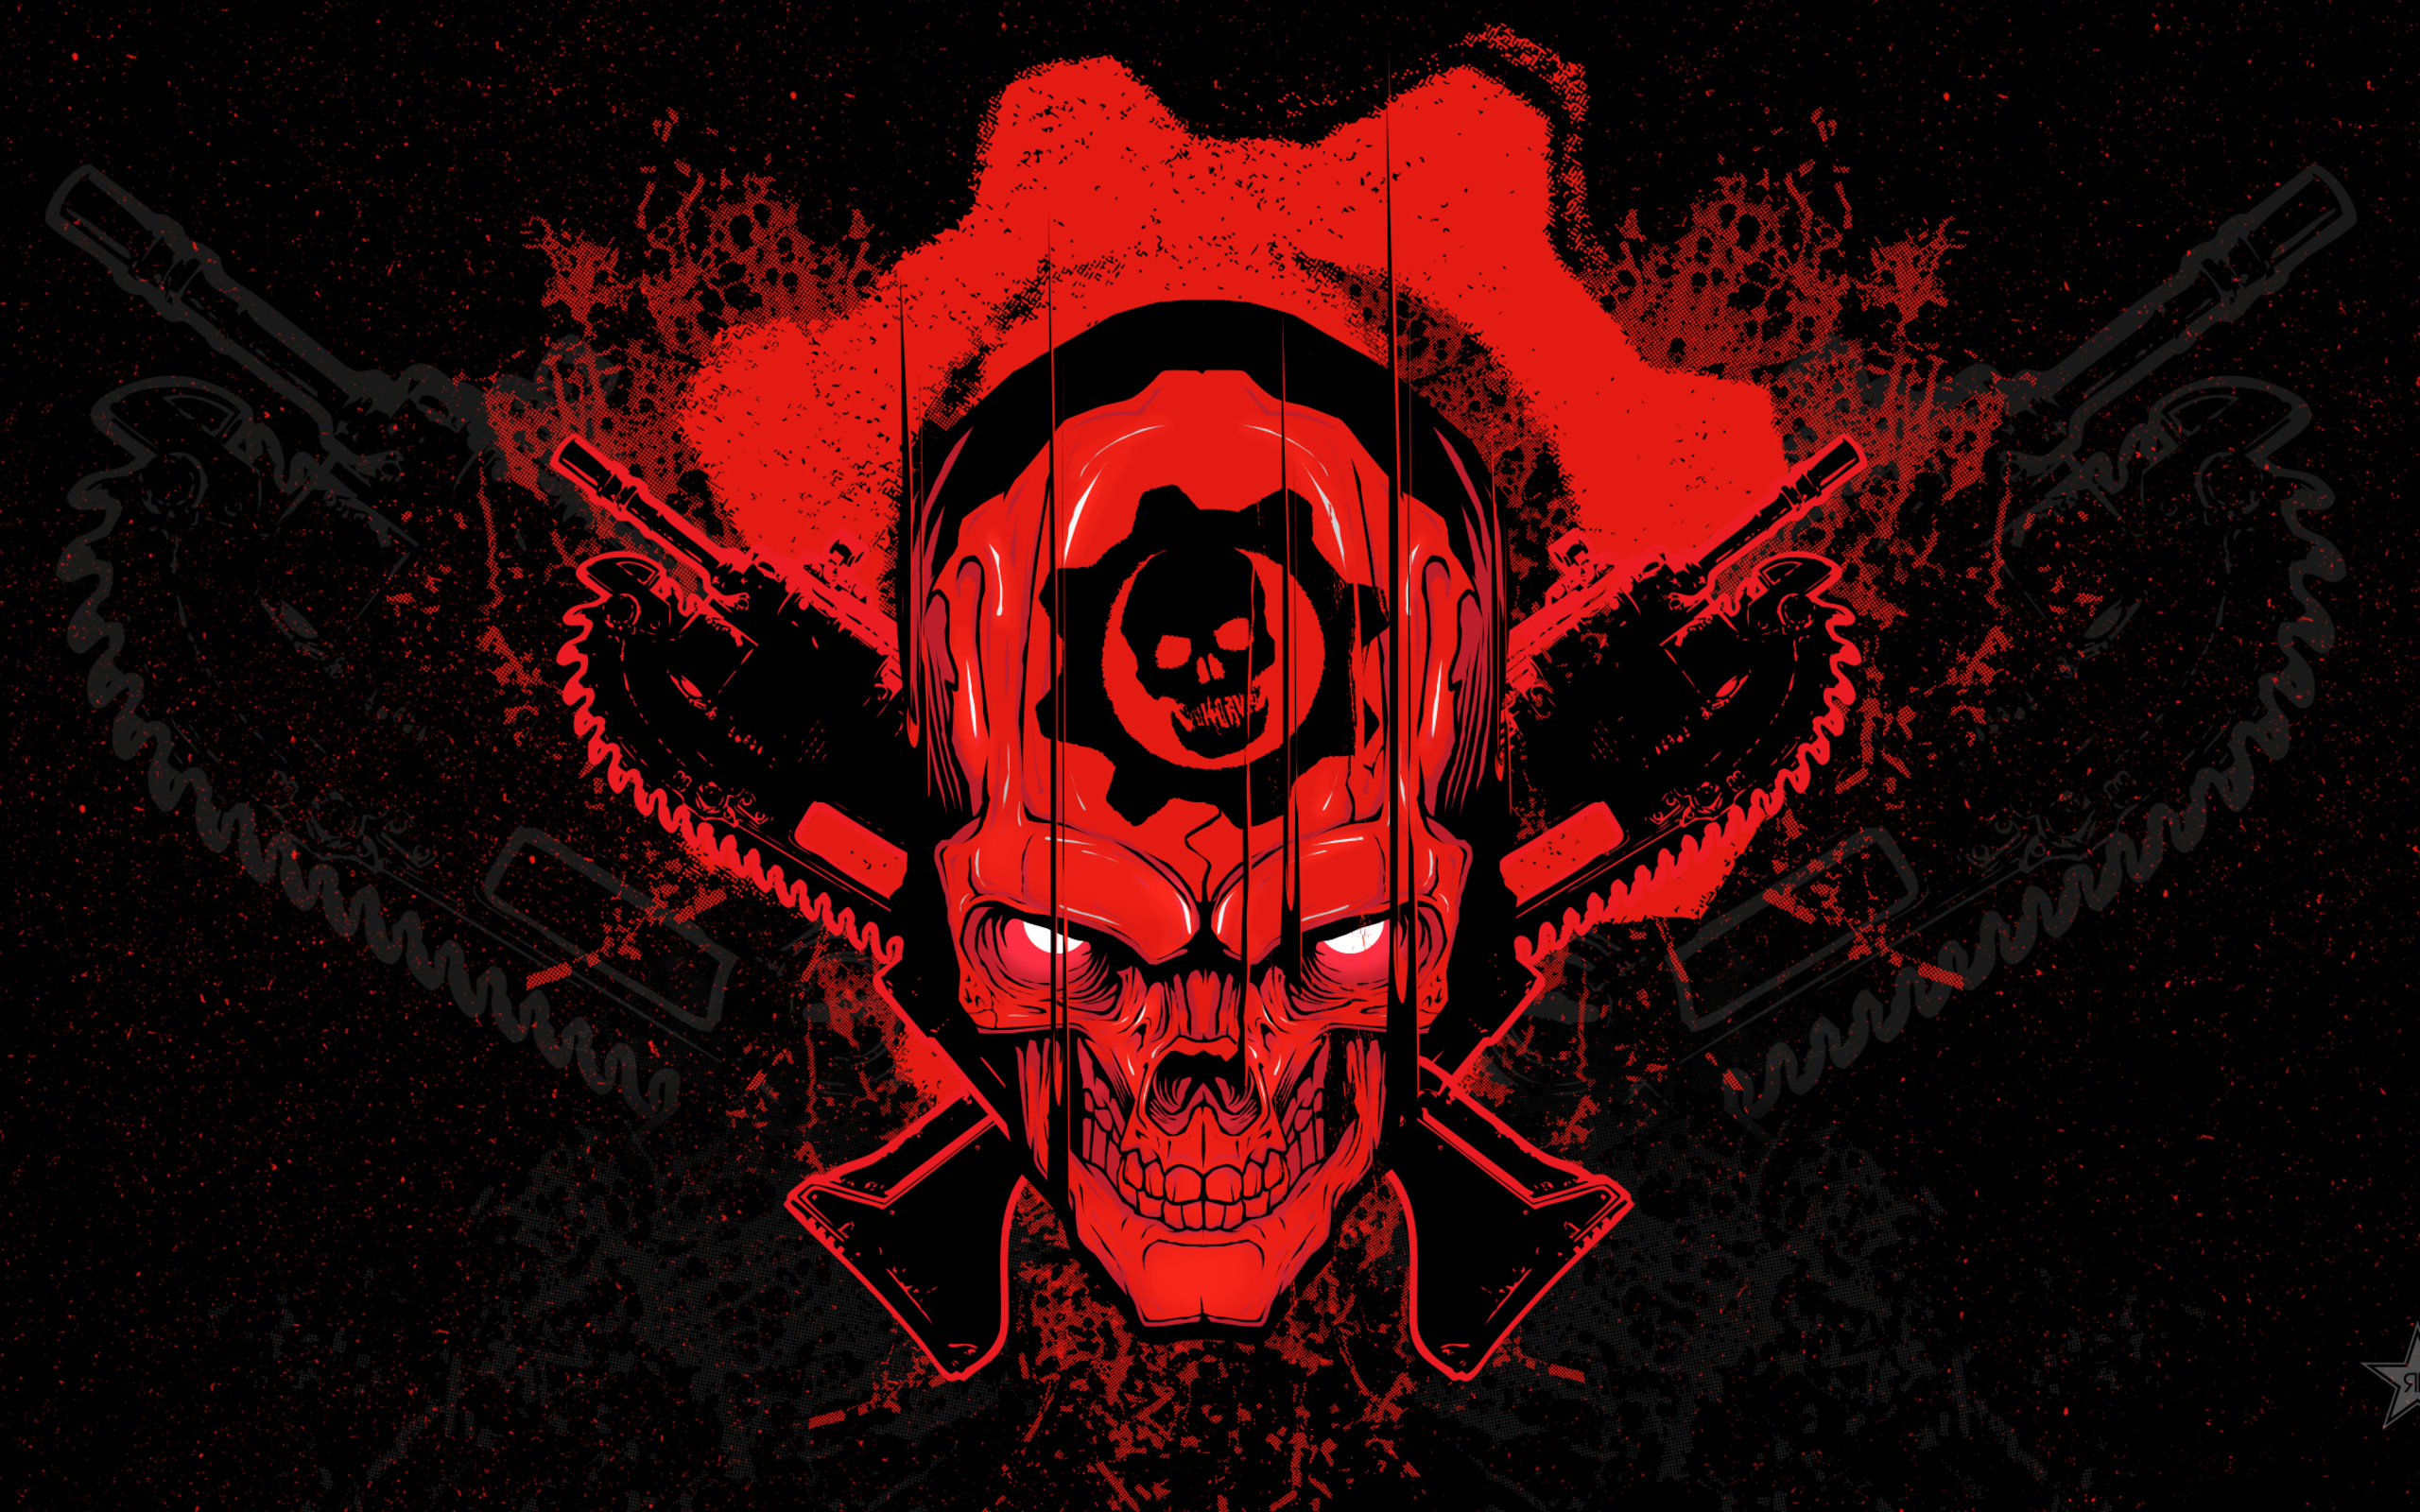 gears-of-war-4-skull-image.jpg